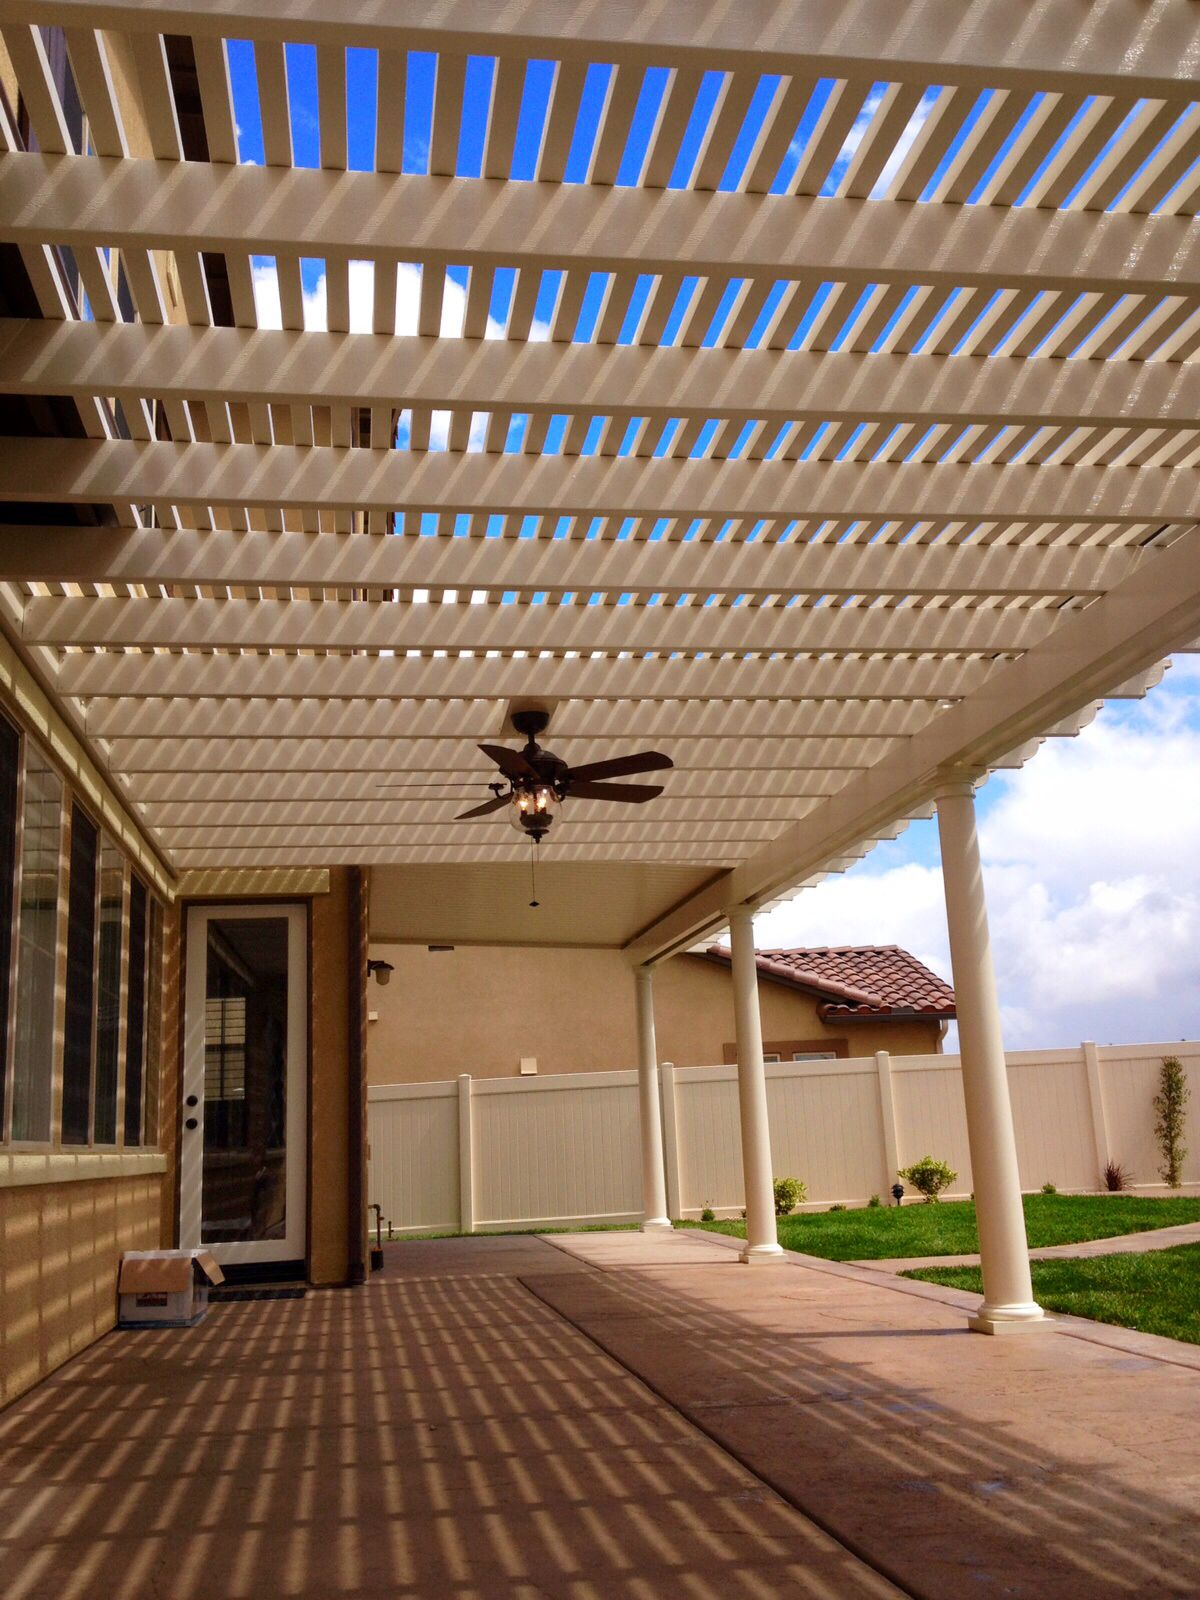 Diy alumawood patio covers !! Contact us and let us help